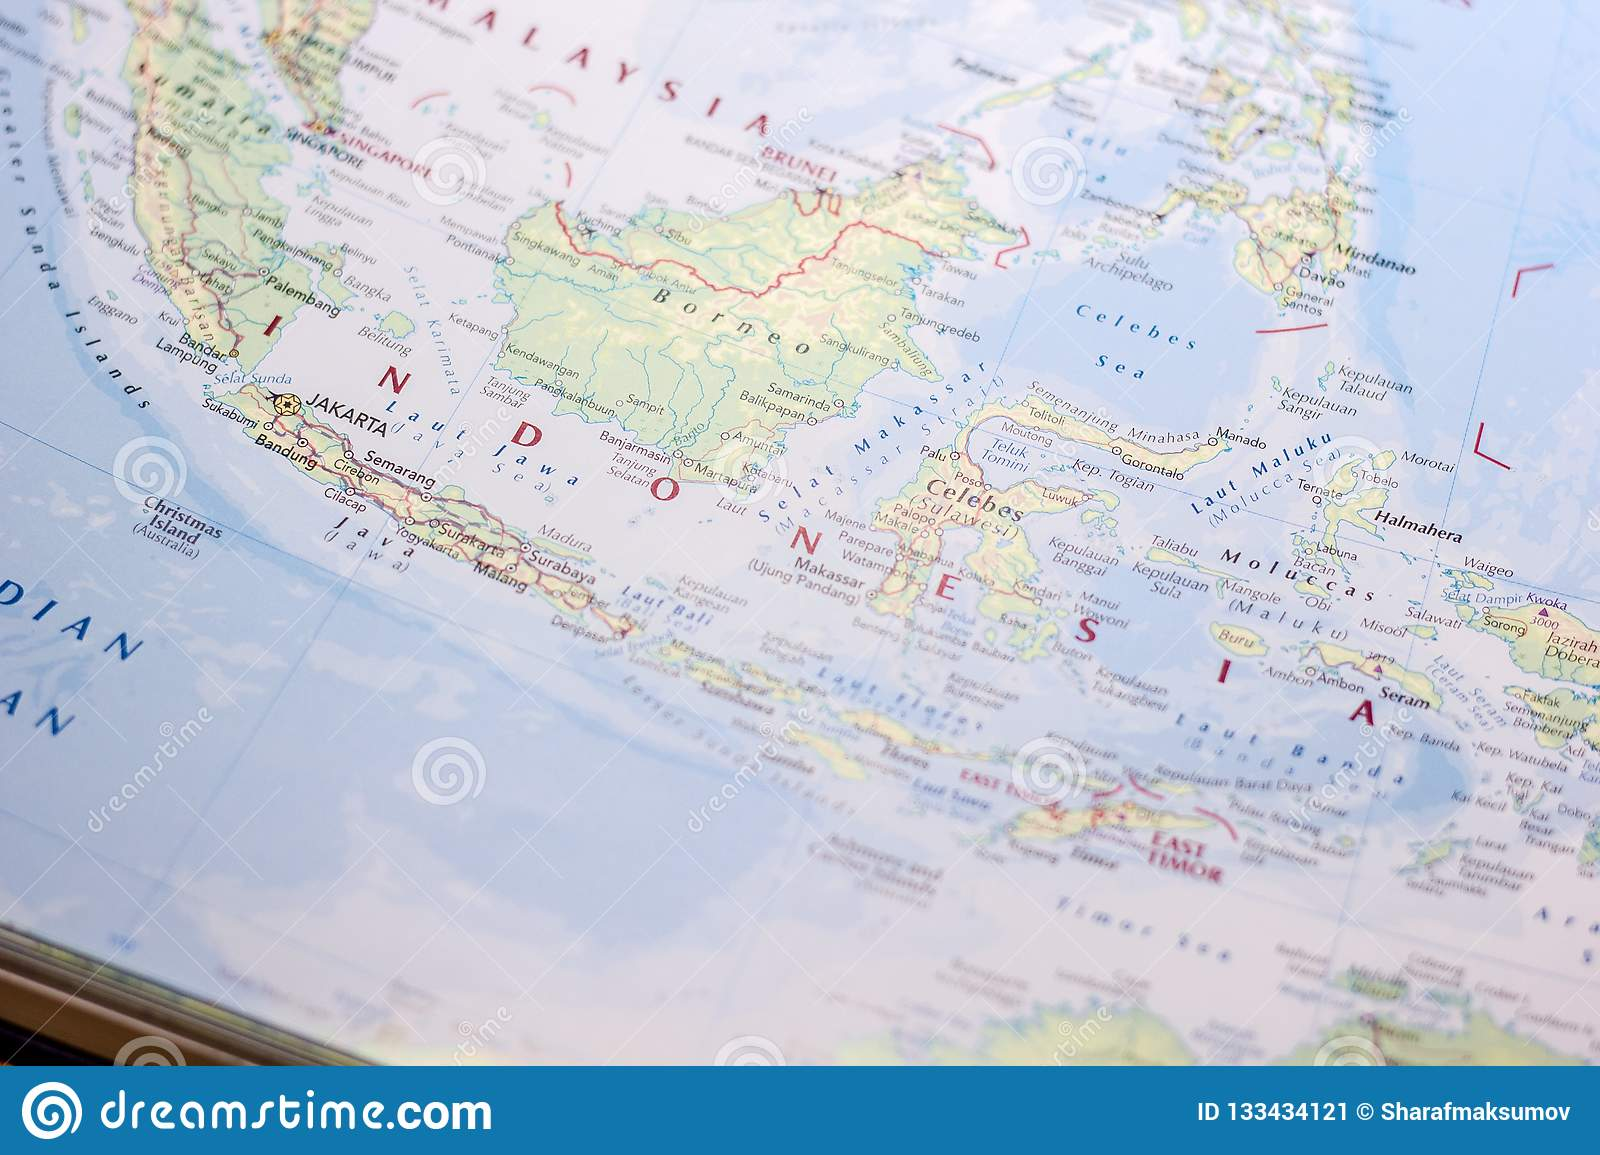 Ivanovsk, Russia - November 24, 2018: Indonesia on the map of the world